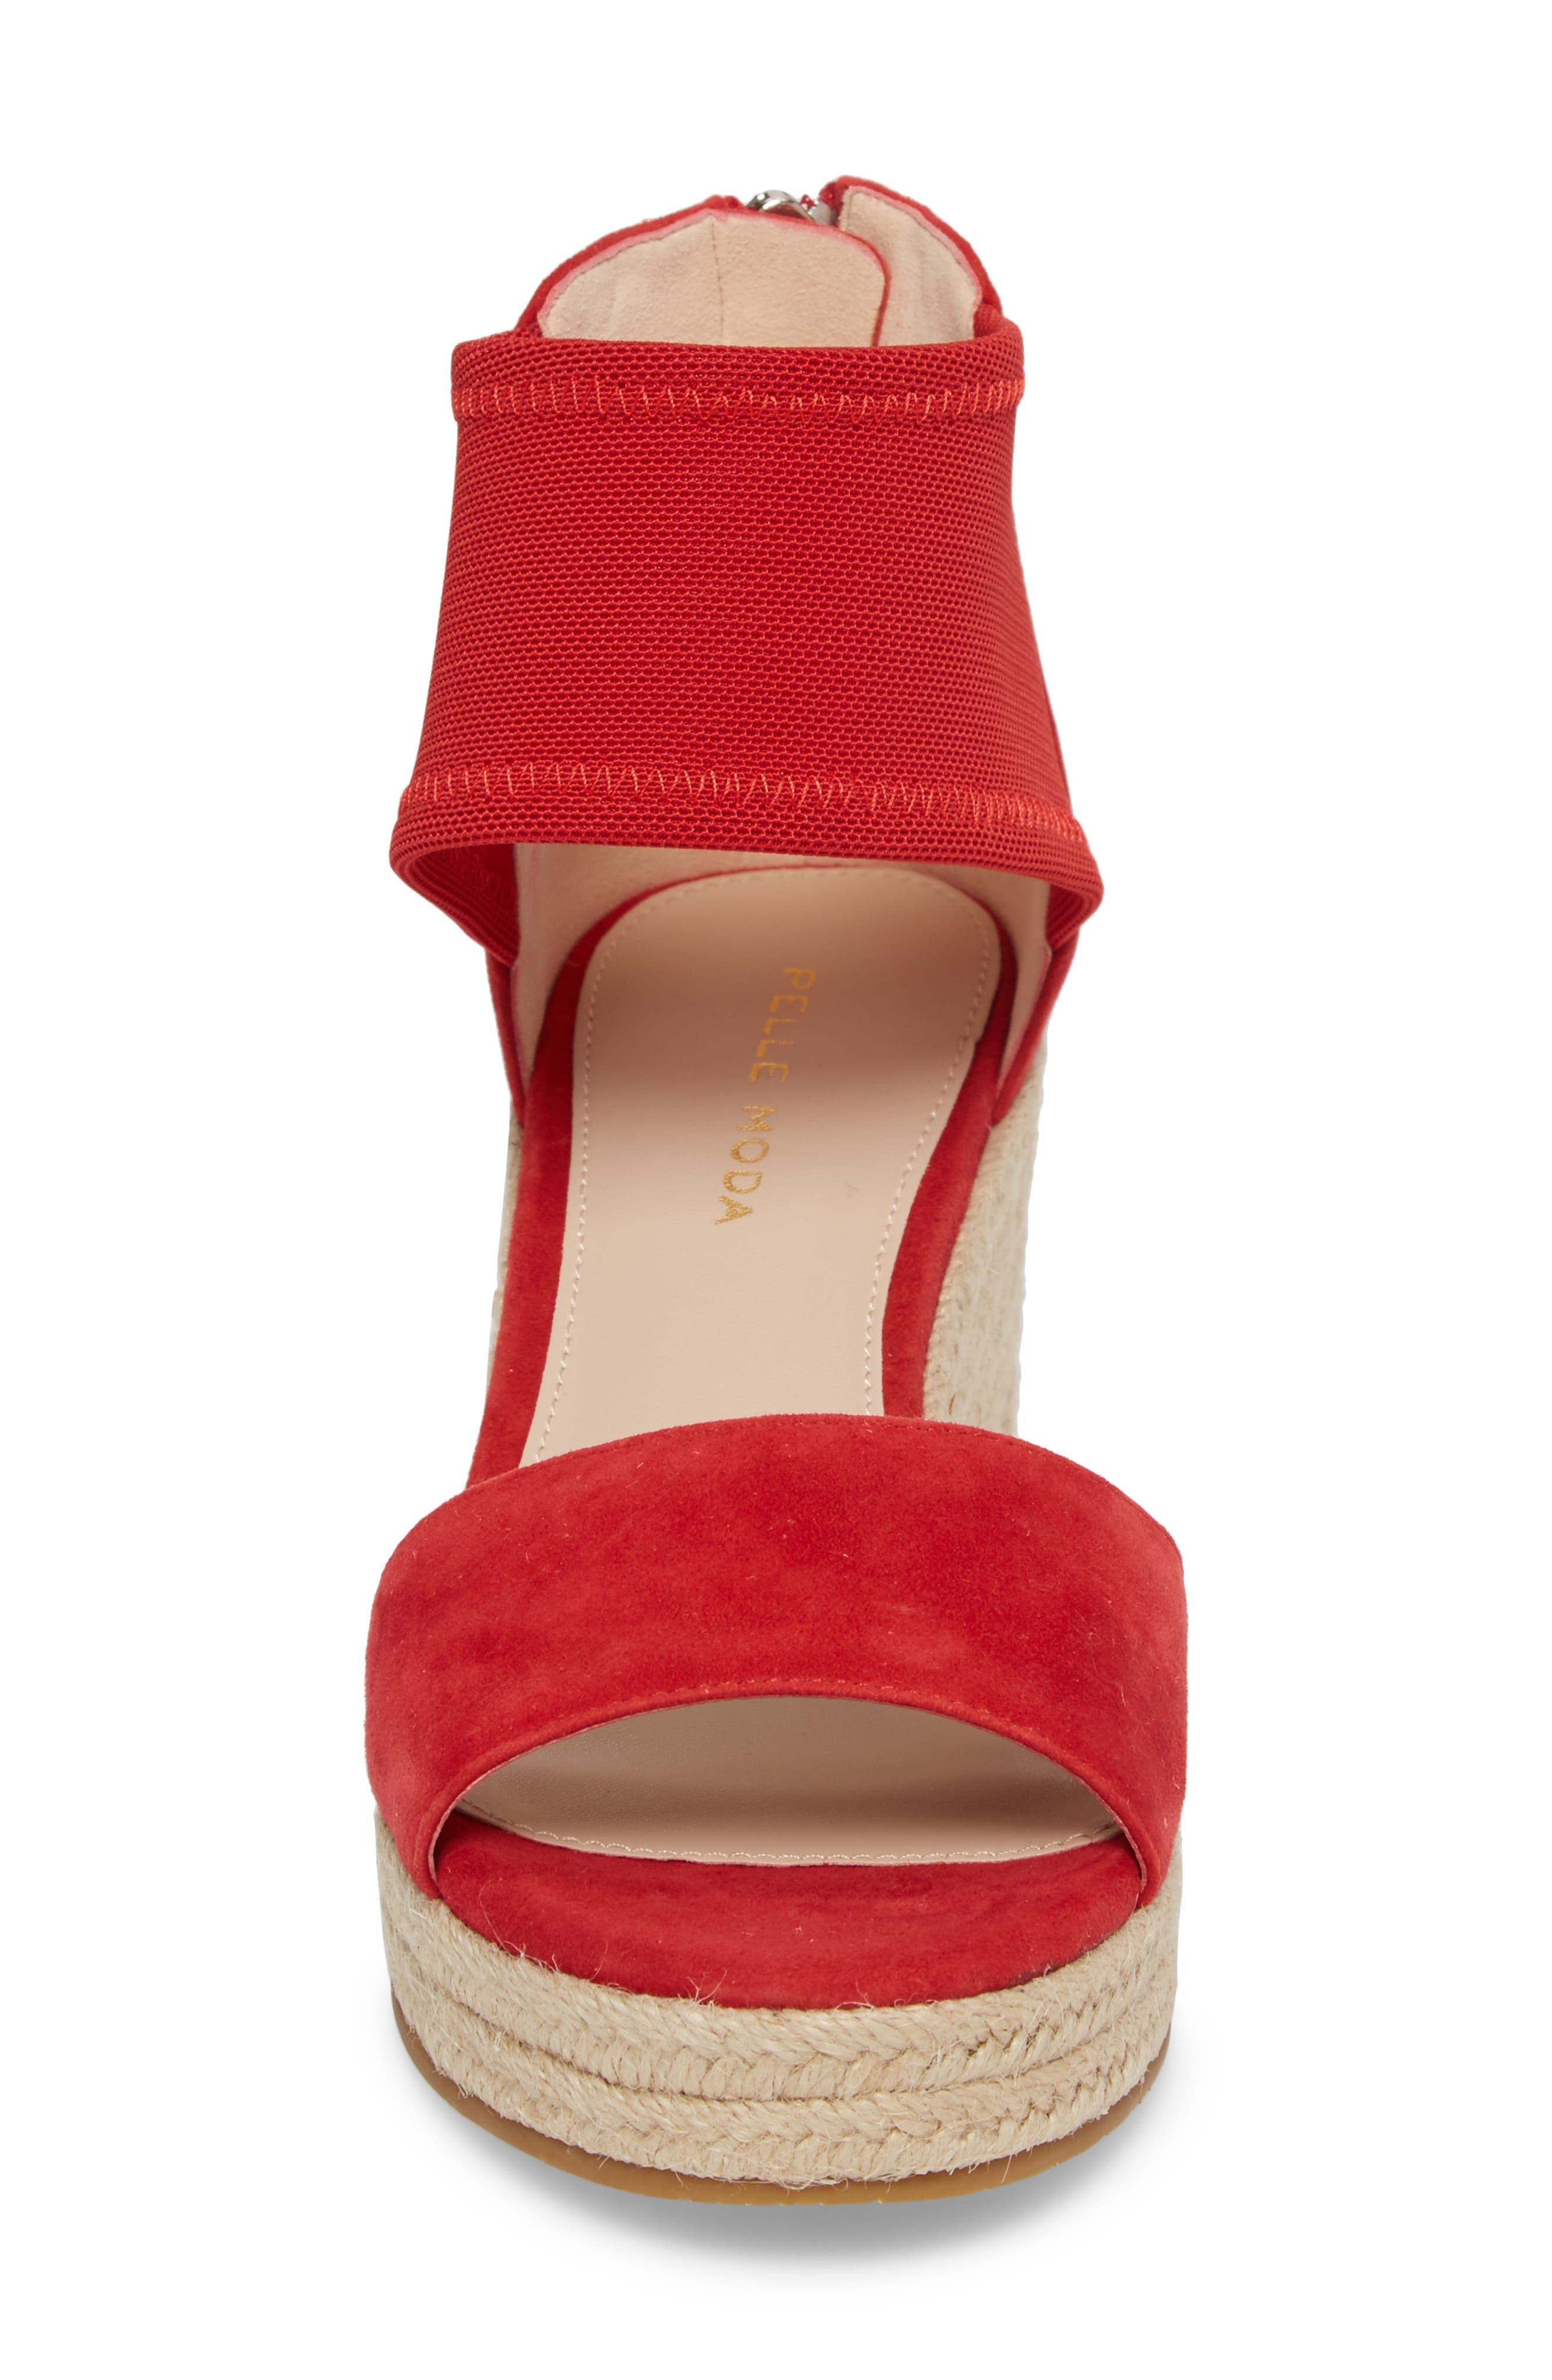 Alternate Image 3  - Pelle Moda Kona Platform Wedge Sandal (Women)